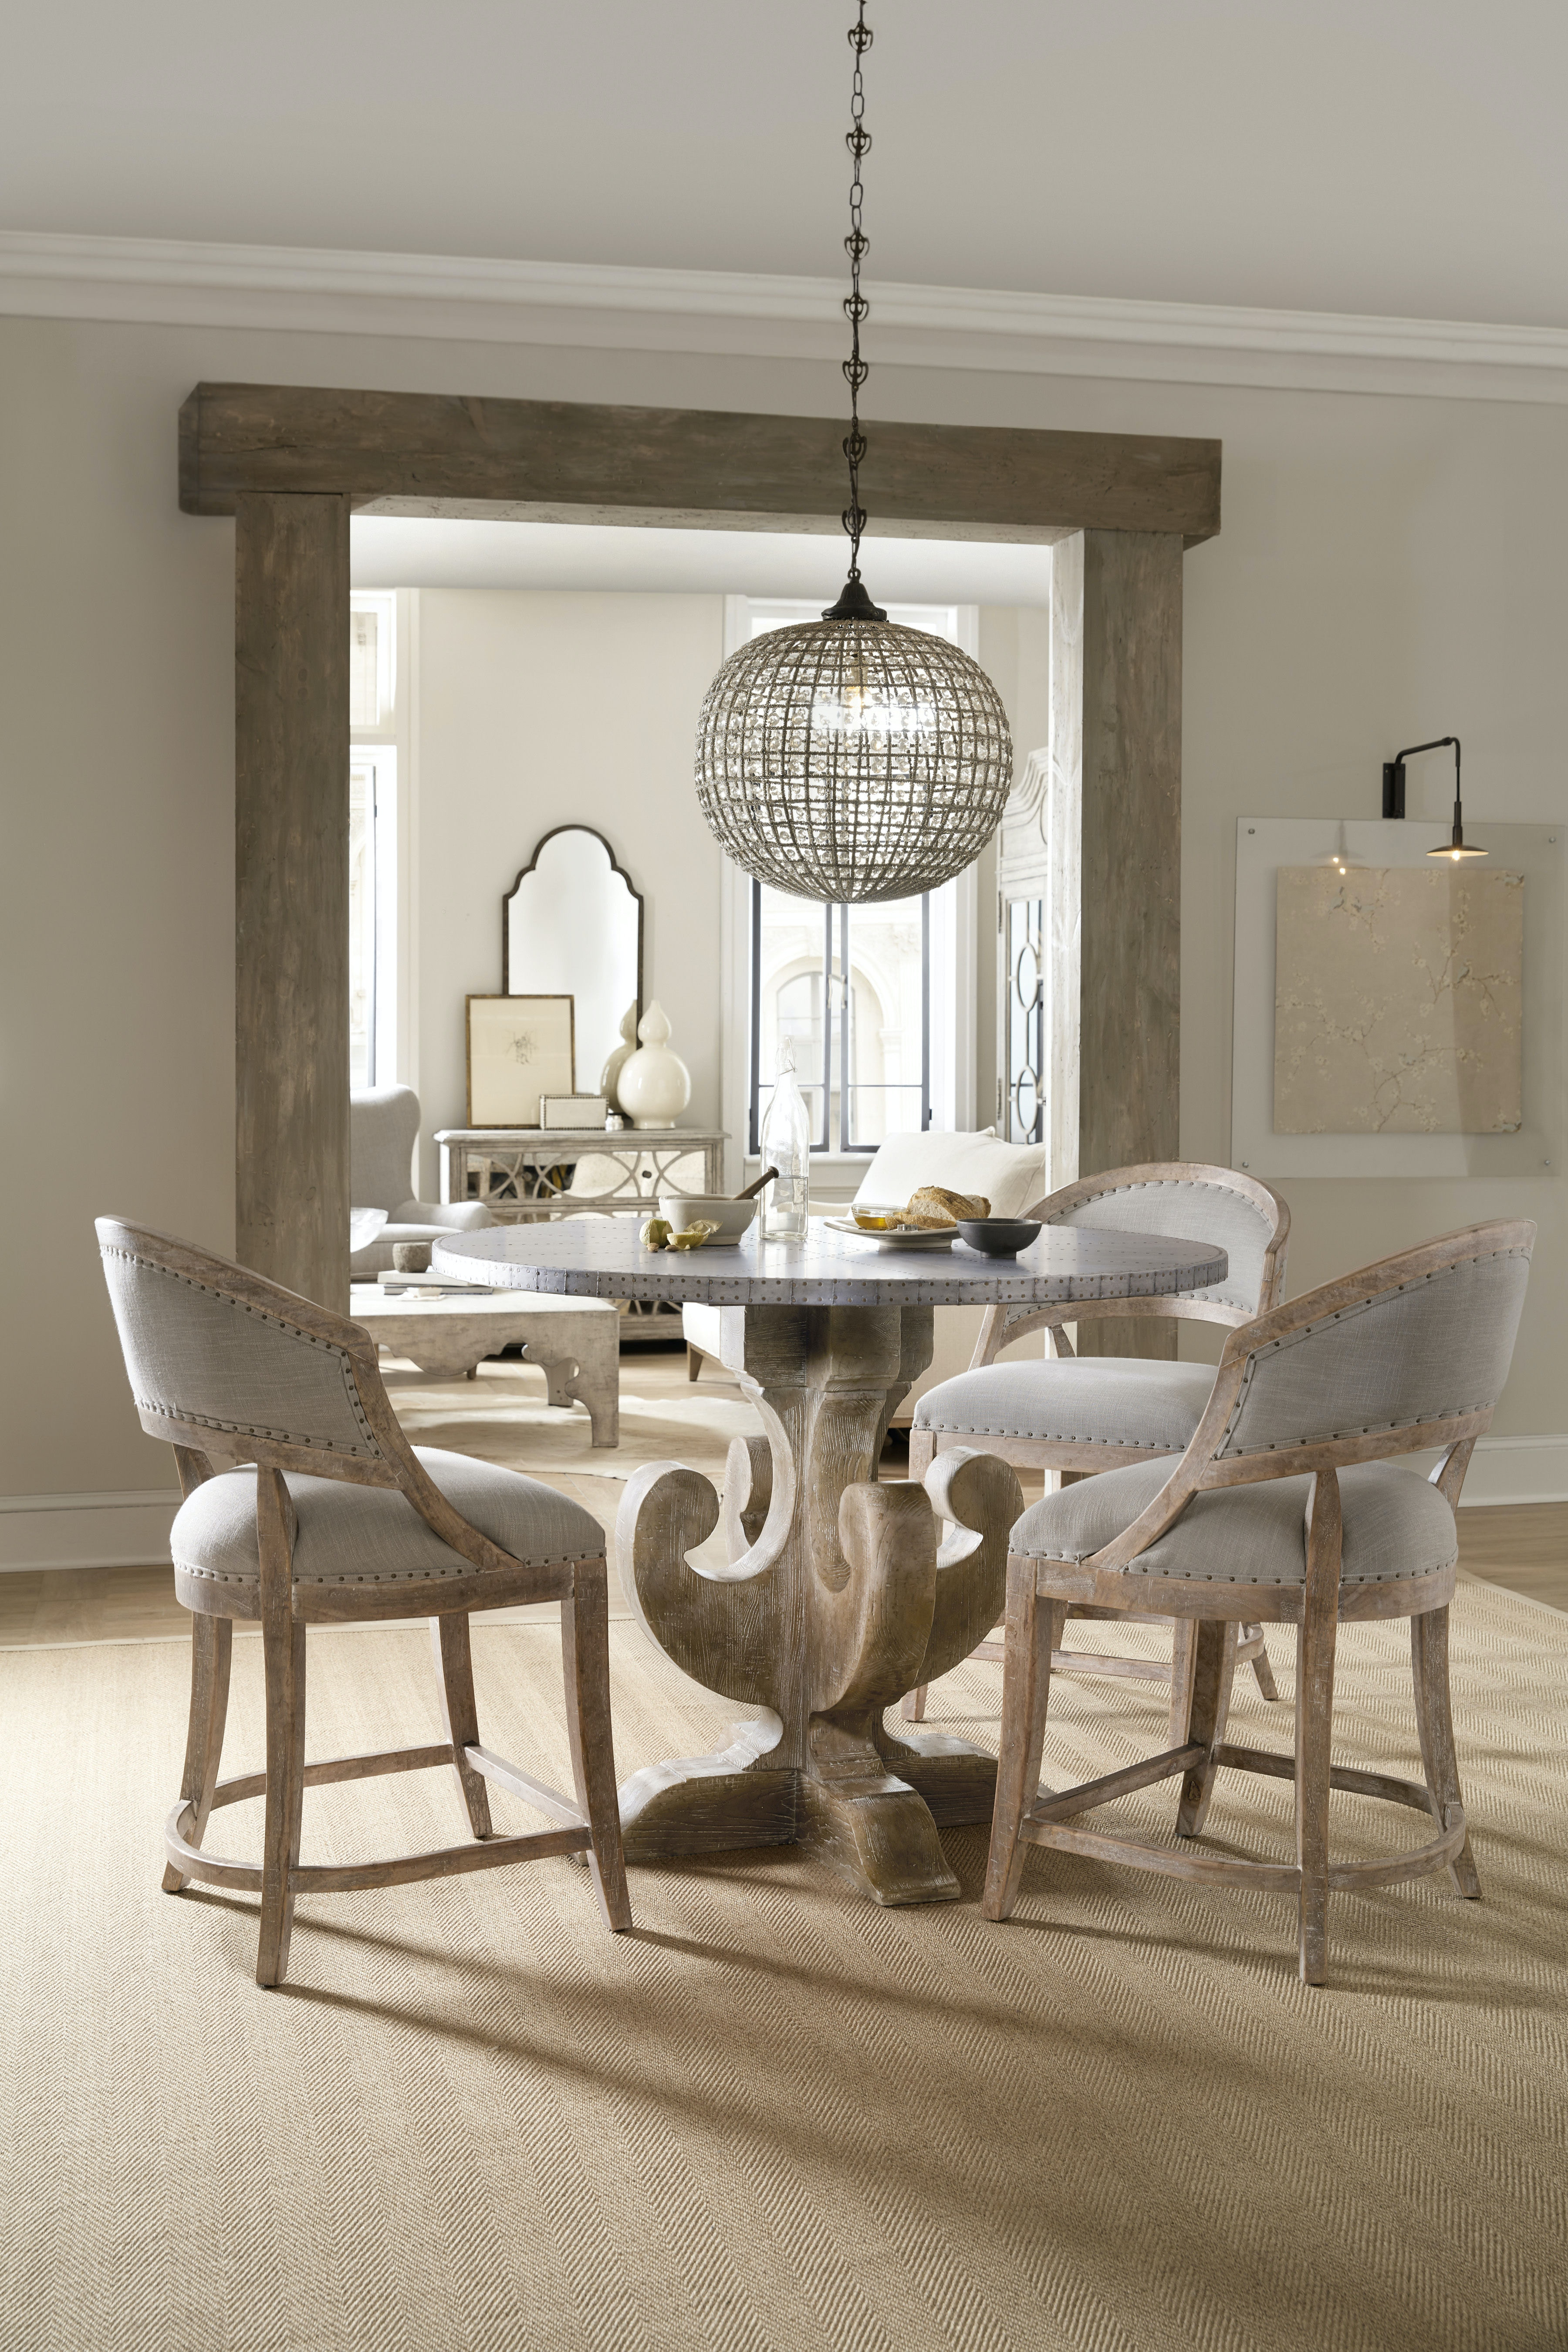 hooker furniture dining room boheme ascension 48in wood round hooker furniture boheme ascension 48in wood round dining table 5750 75203 mwd